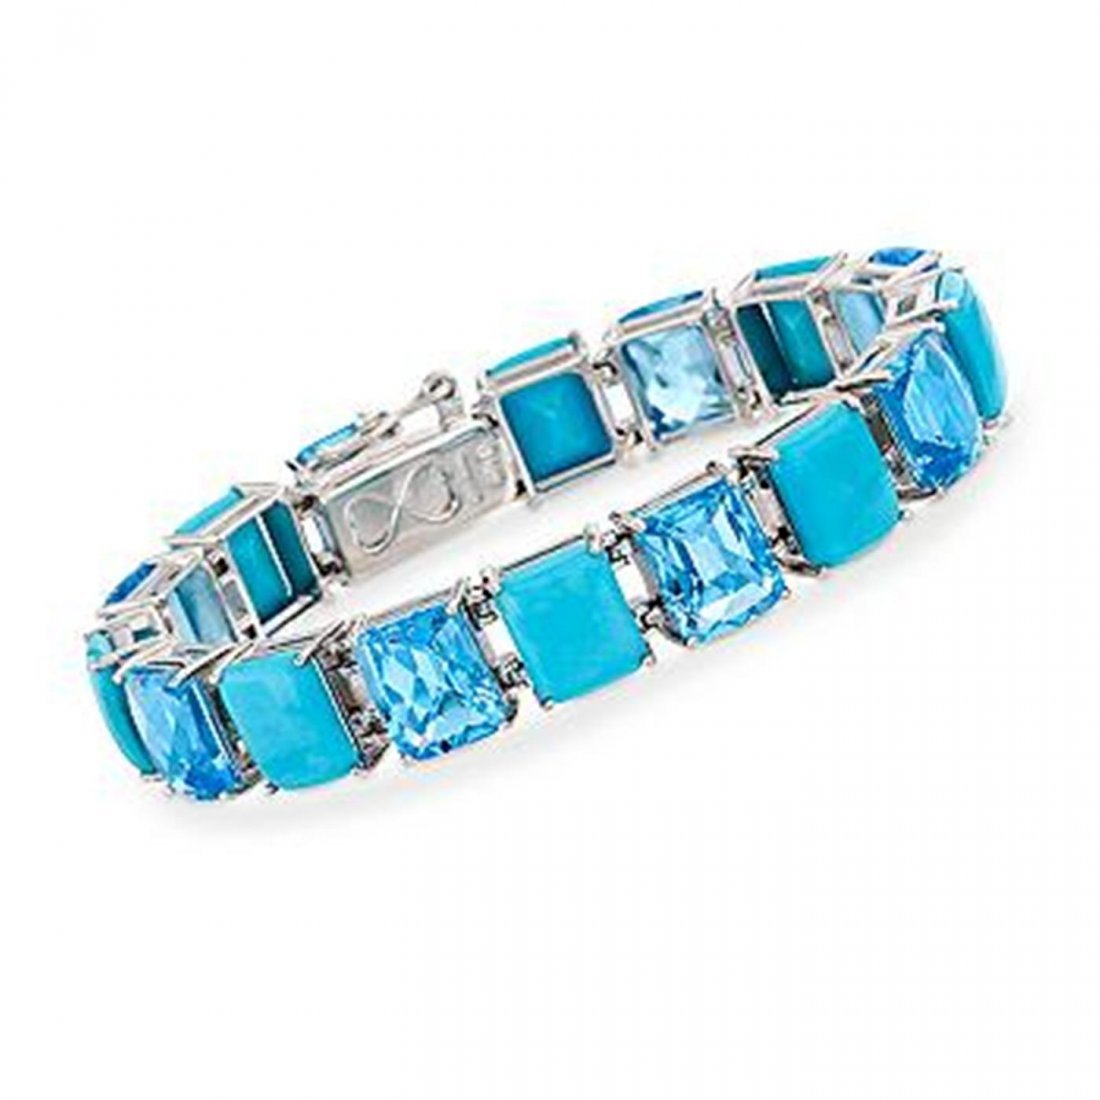 36.00 ct. t.w. Topaz and Turquoise Bracelet in Sterling